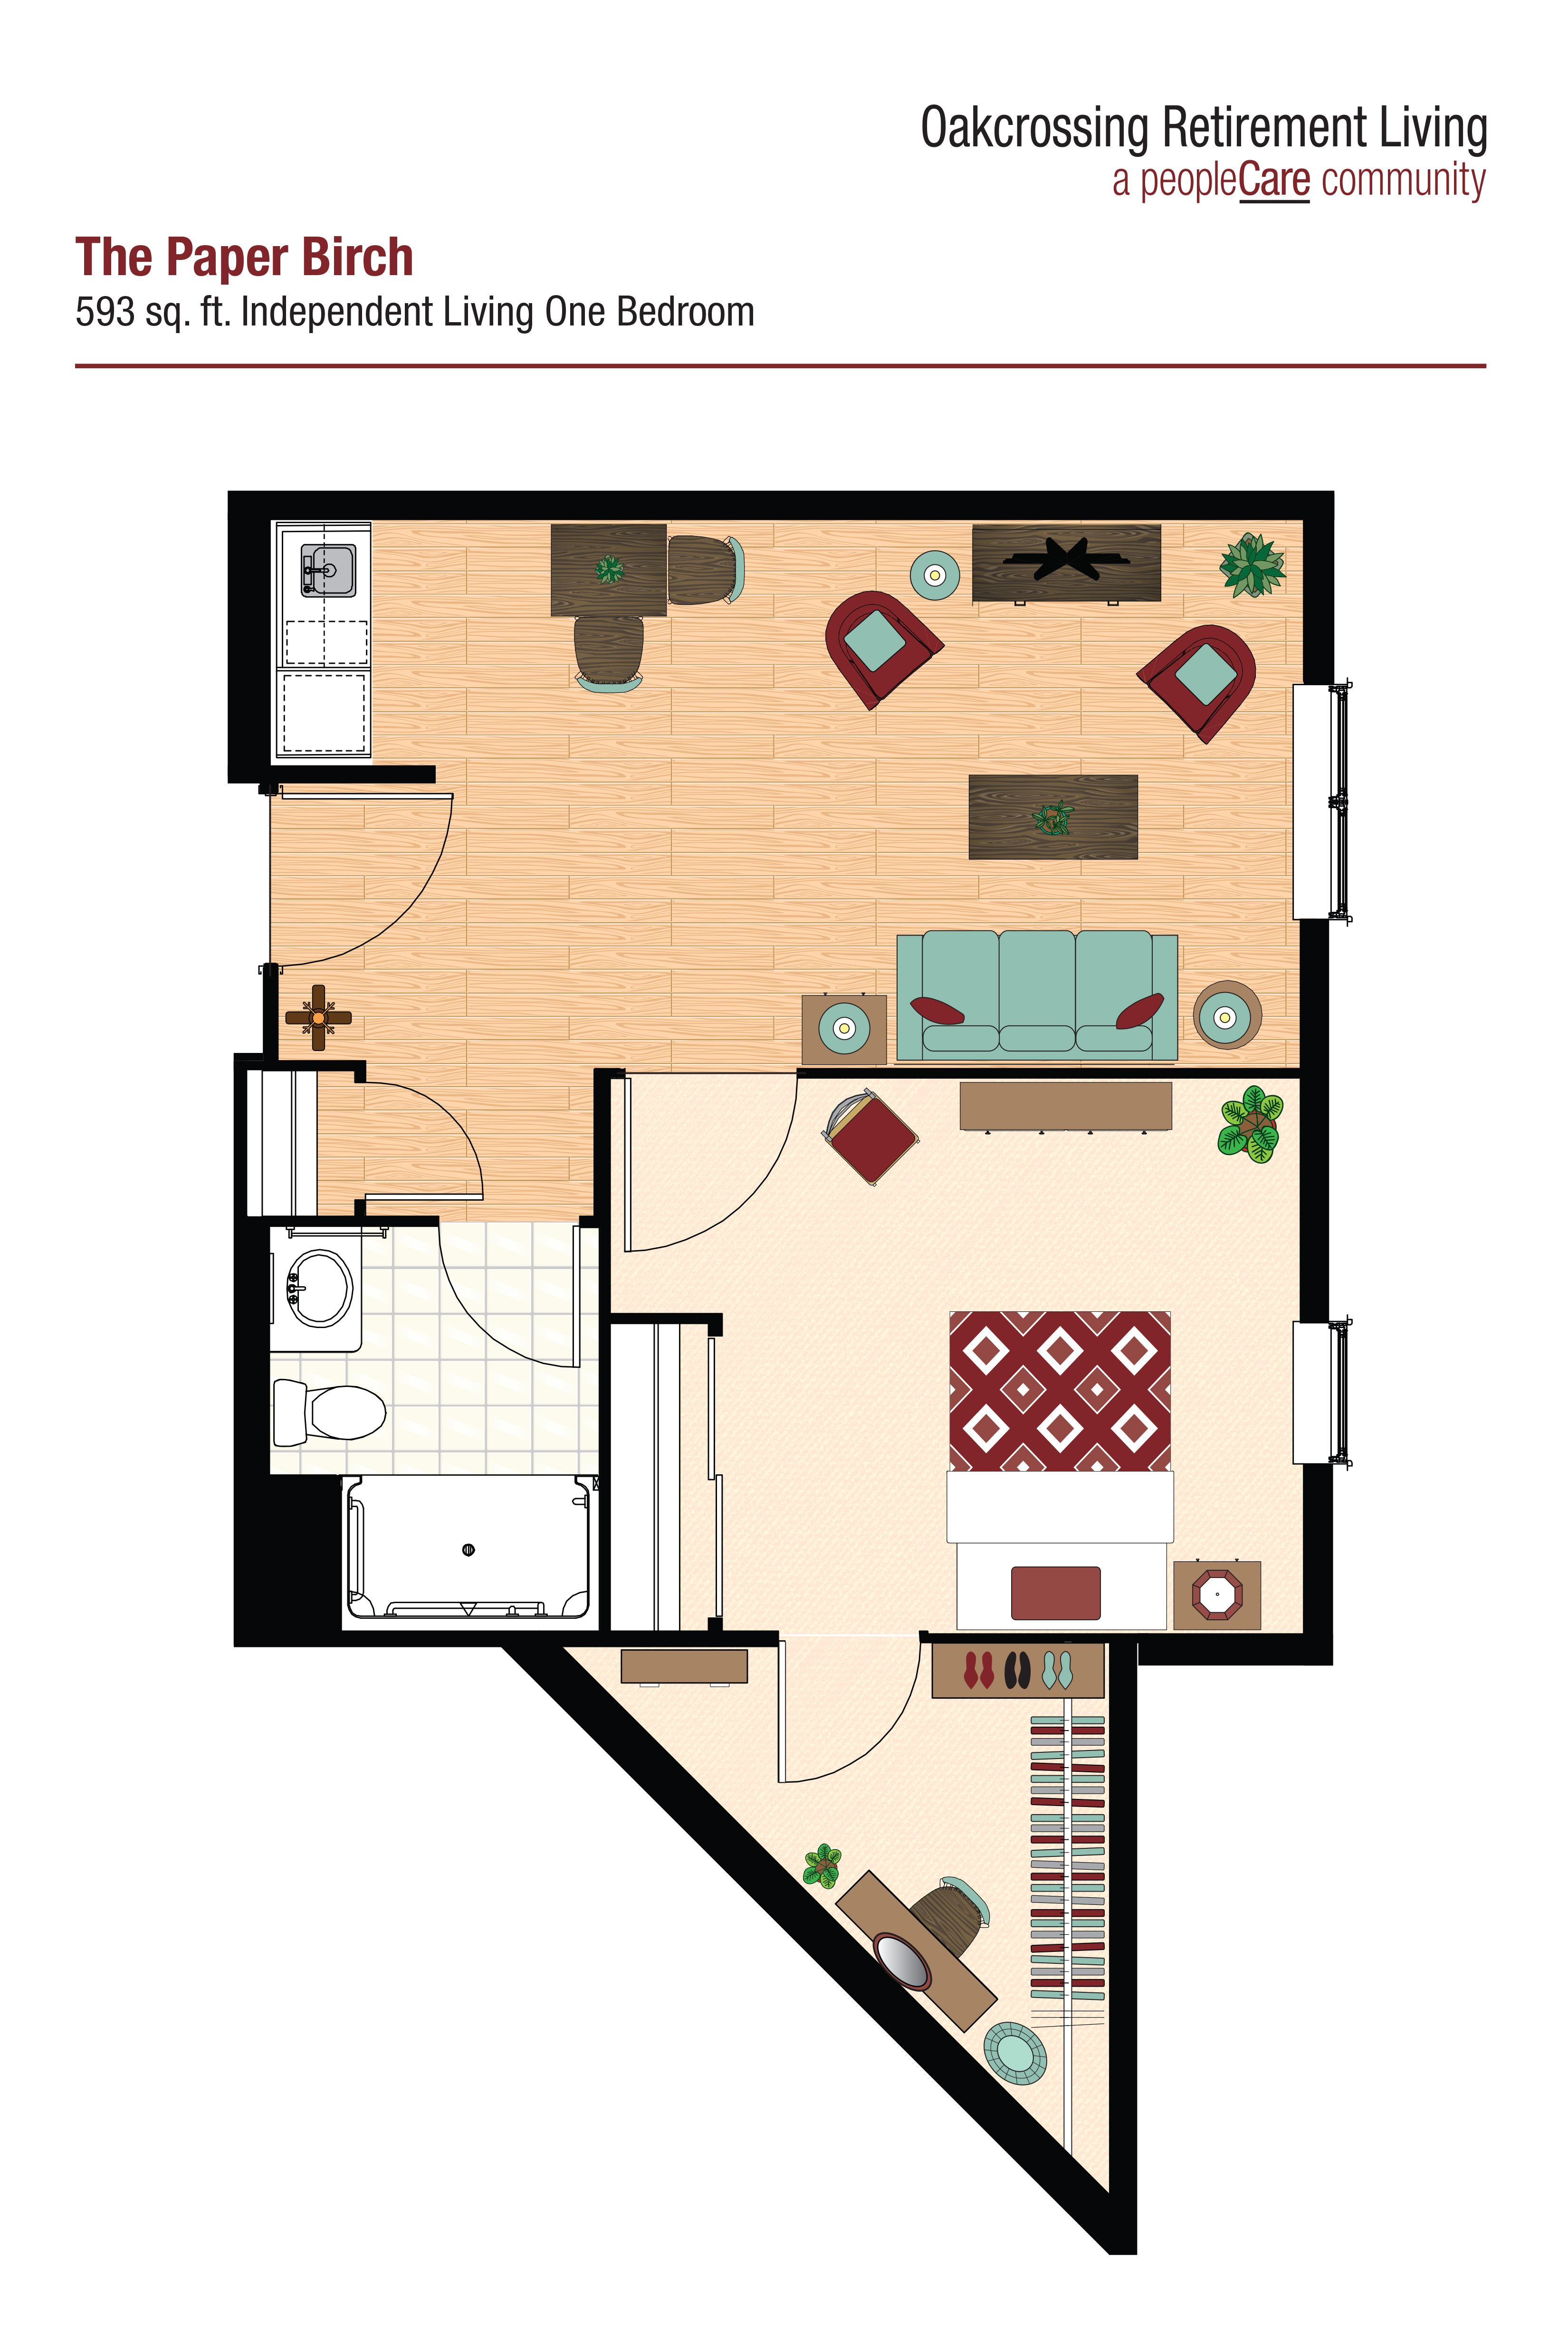 5506-1bed-PaperBirch